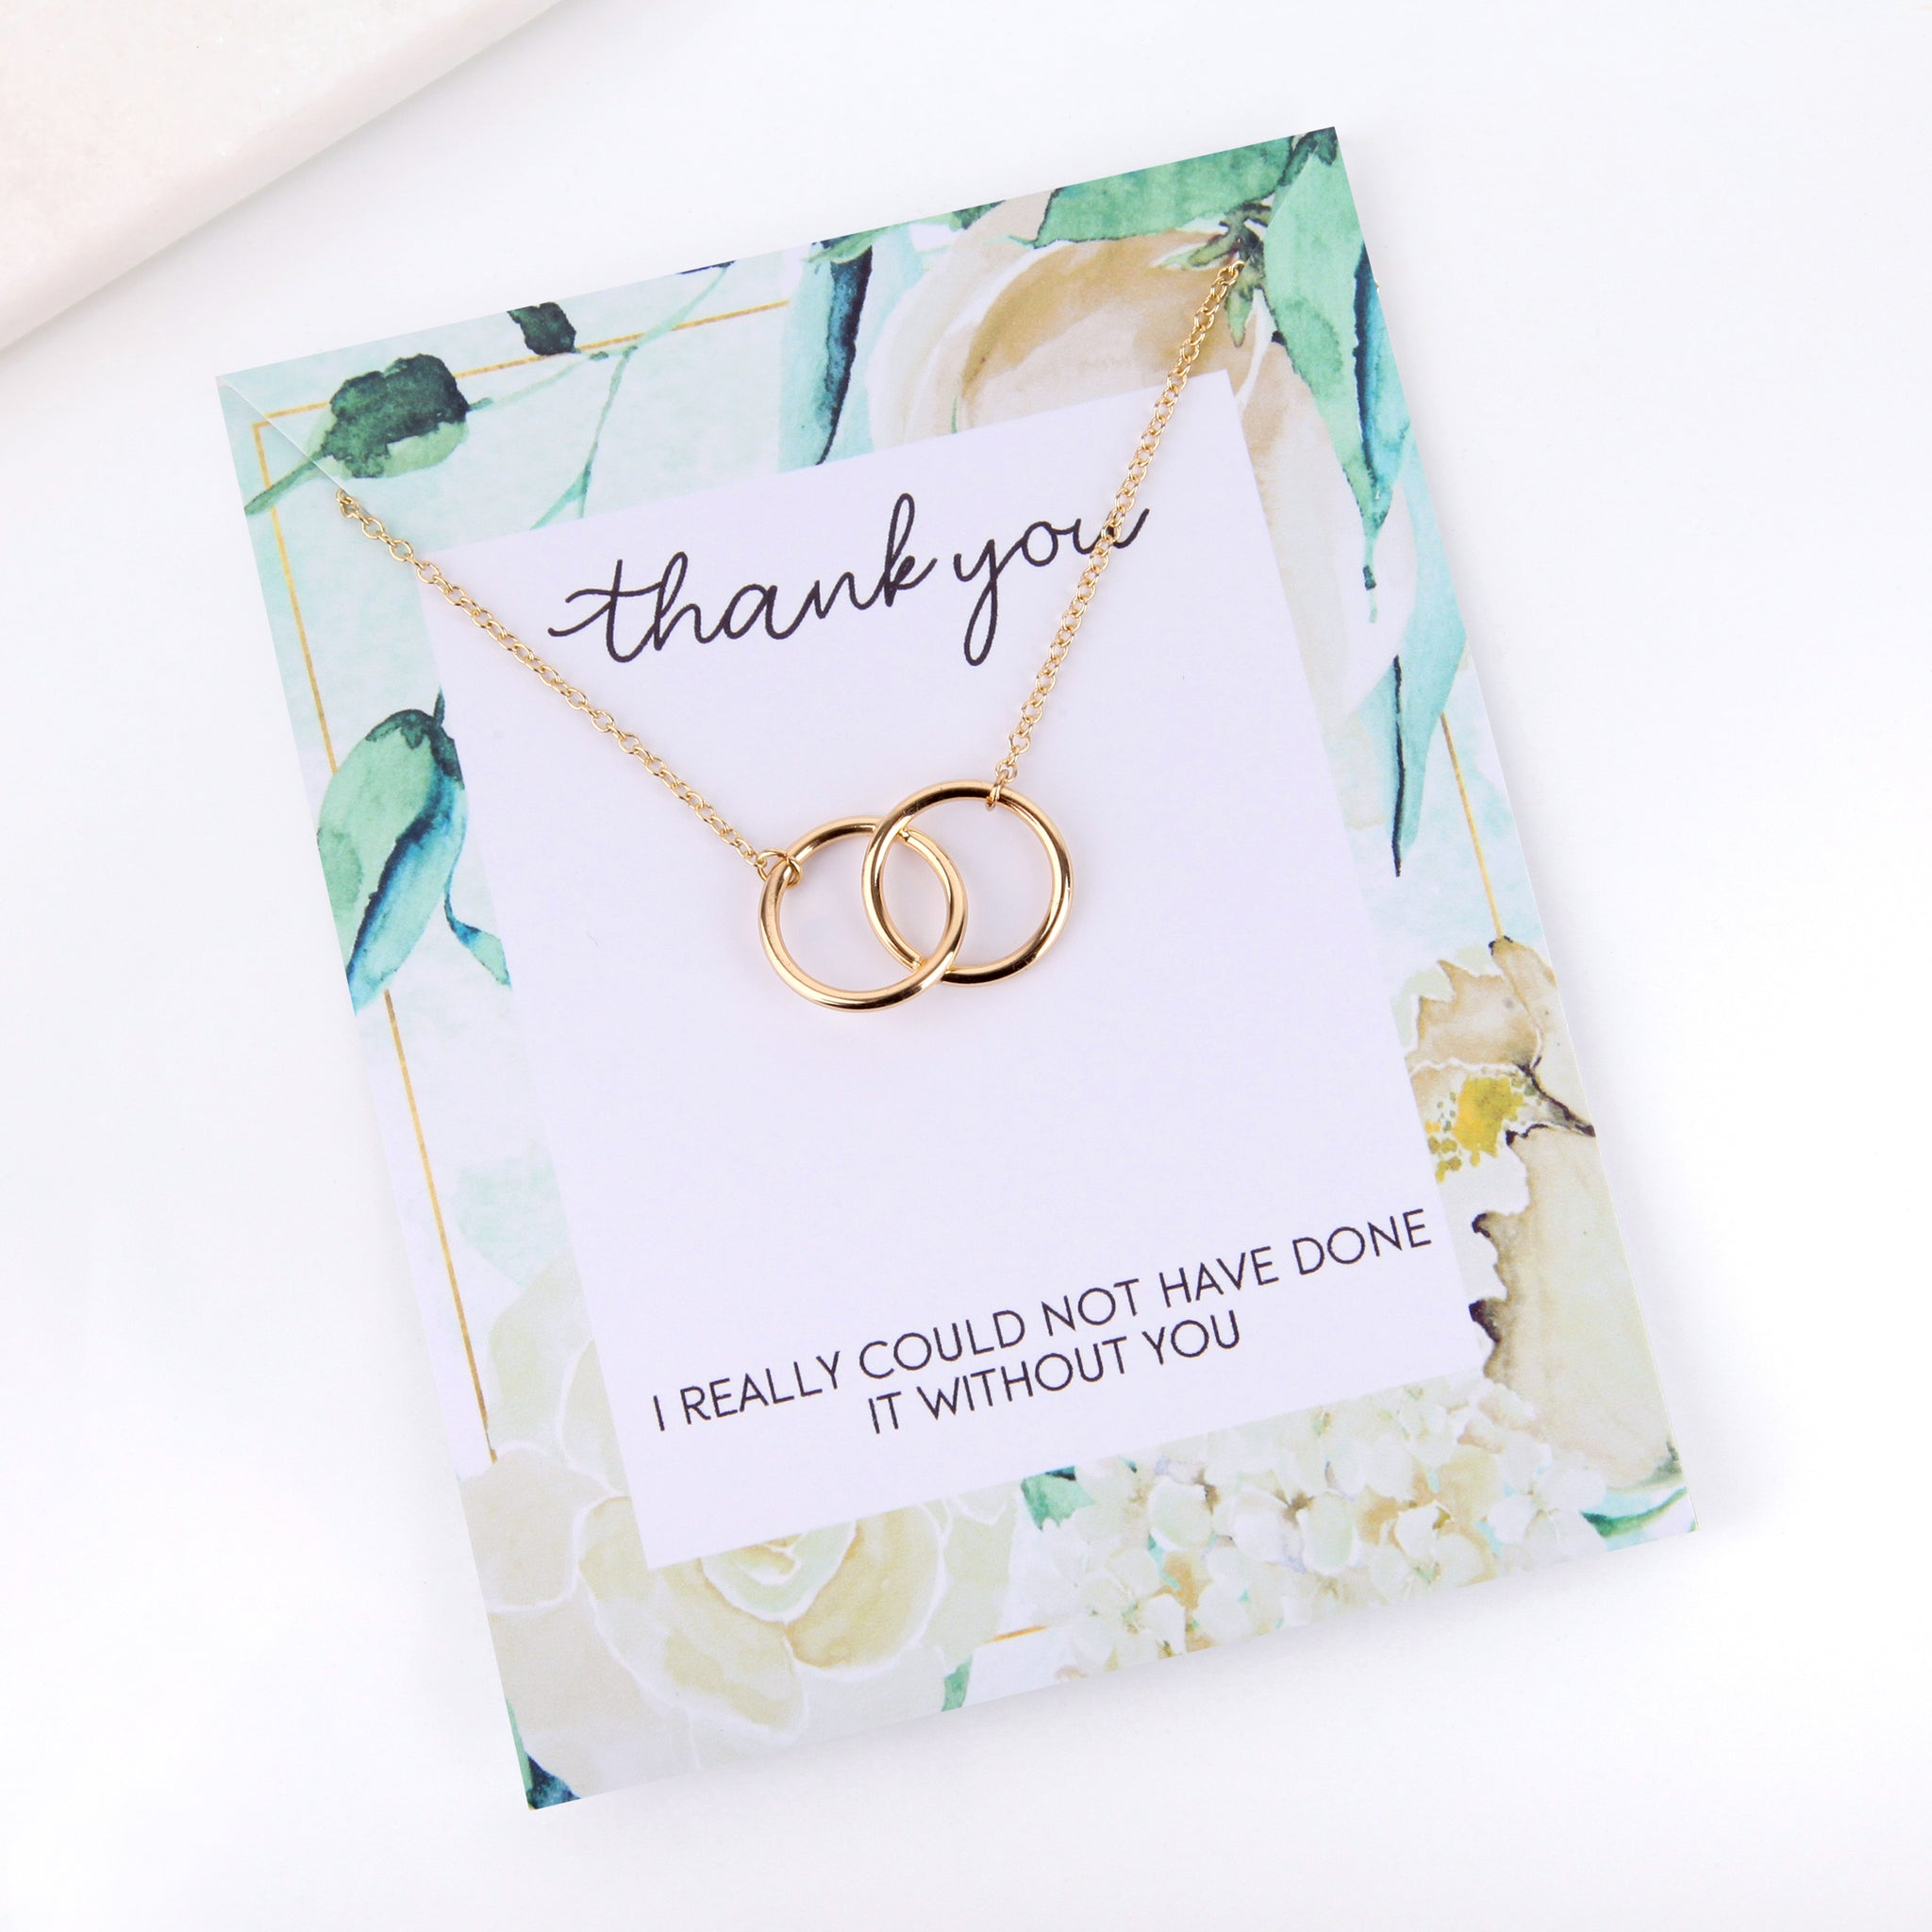 Personalised floral thank you card necklace gift - Statement Made Jewellery